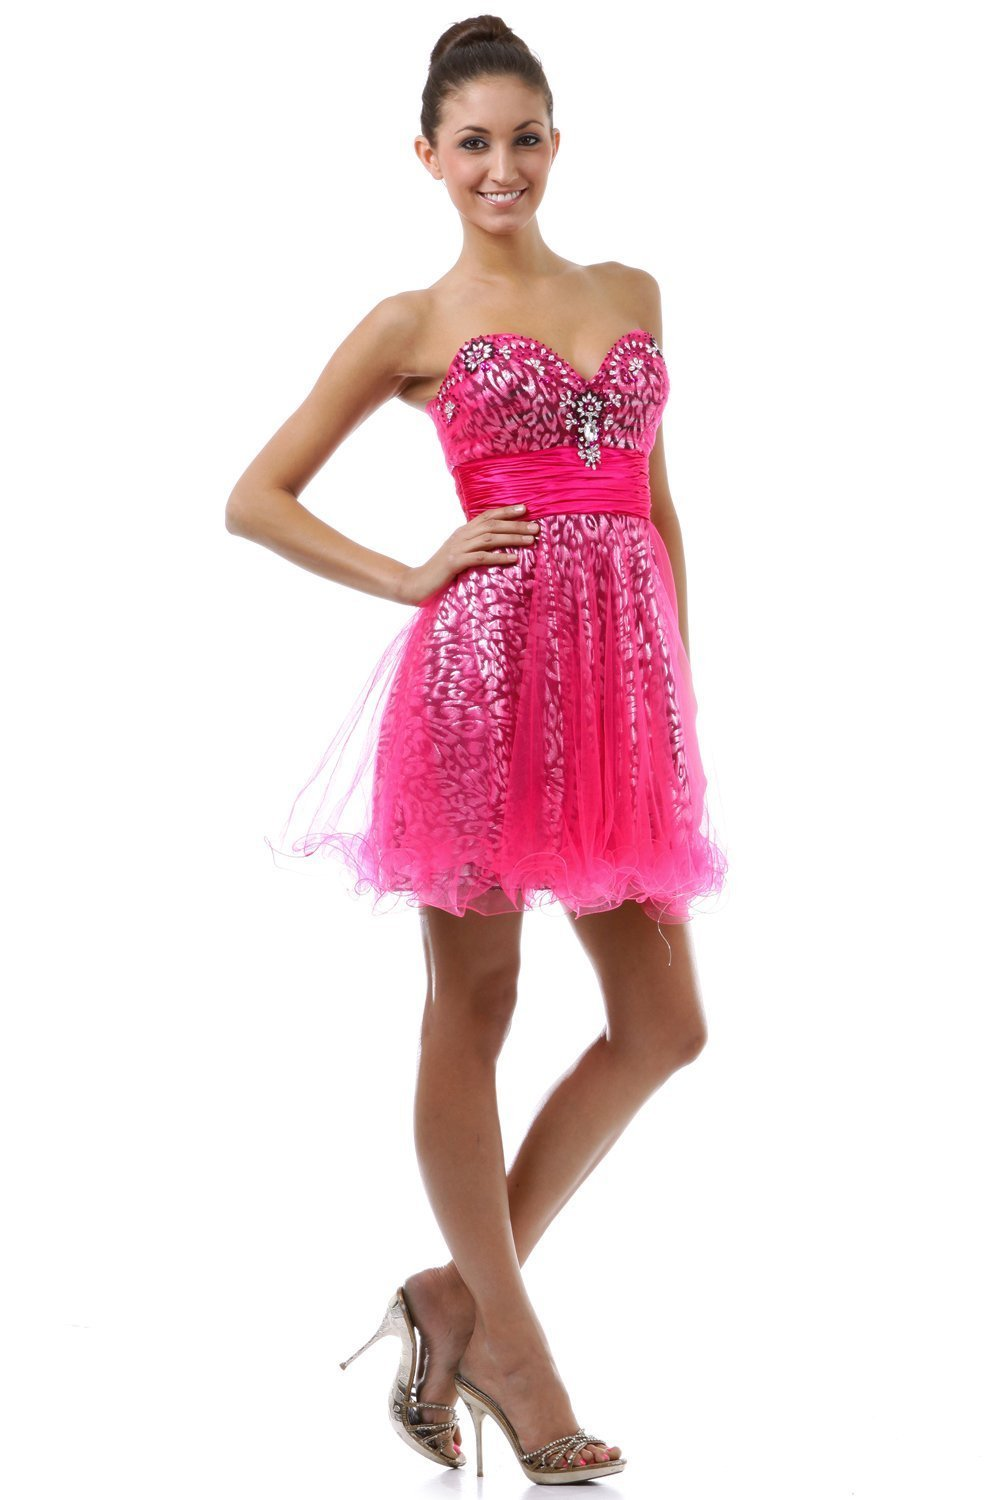 Fashion trends: Cheap short sparkly prom party dresses